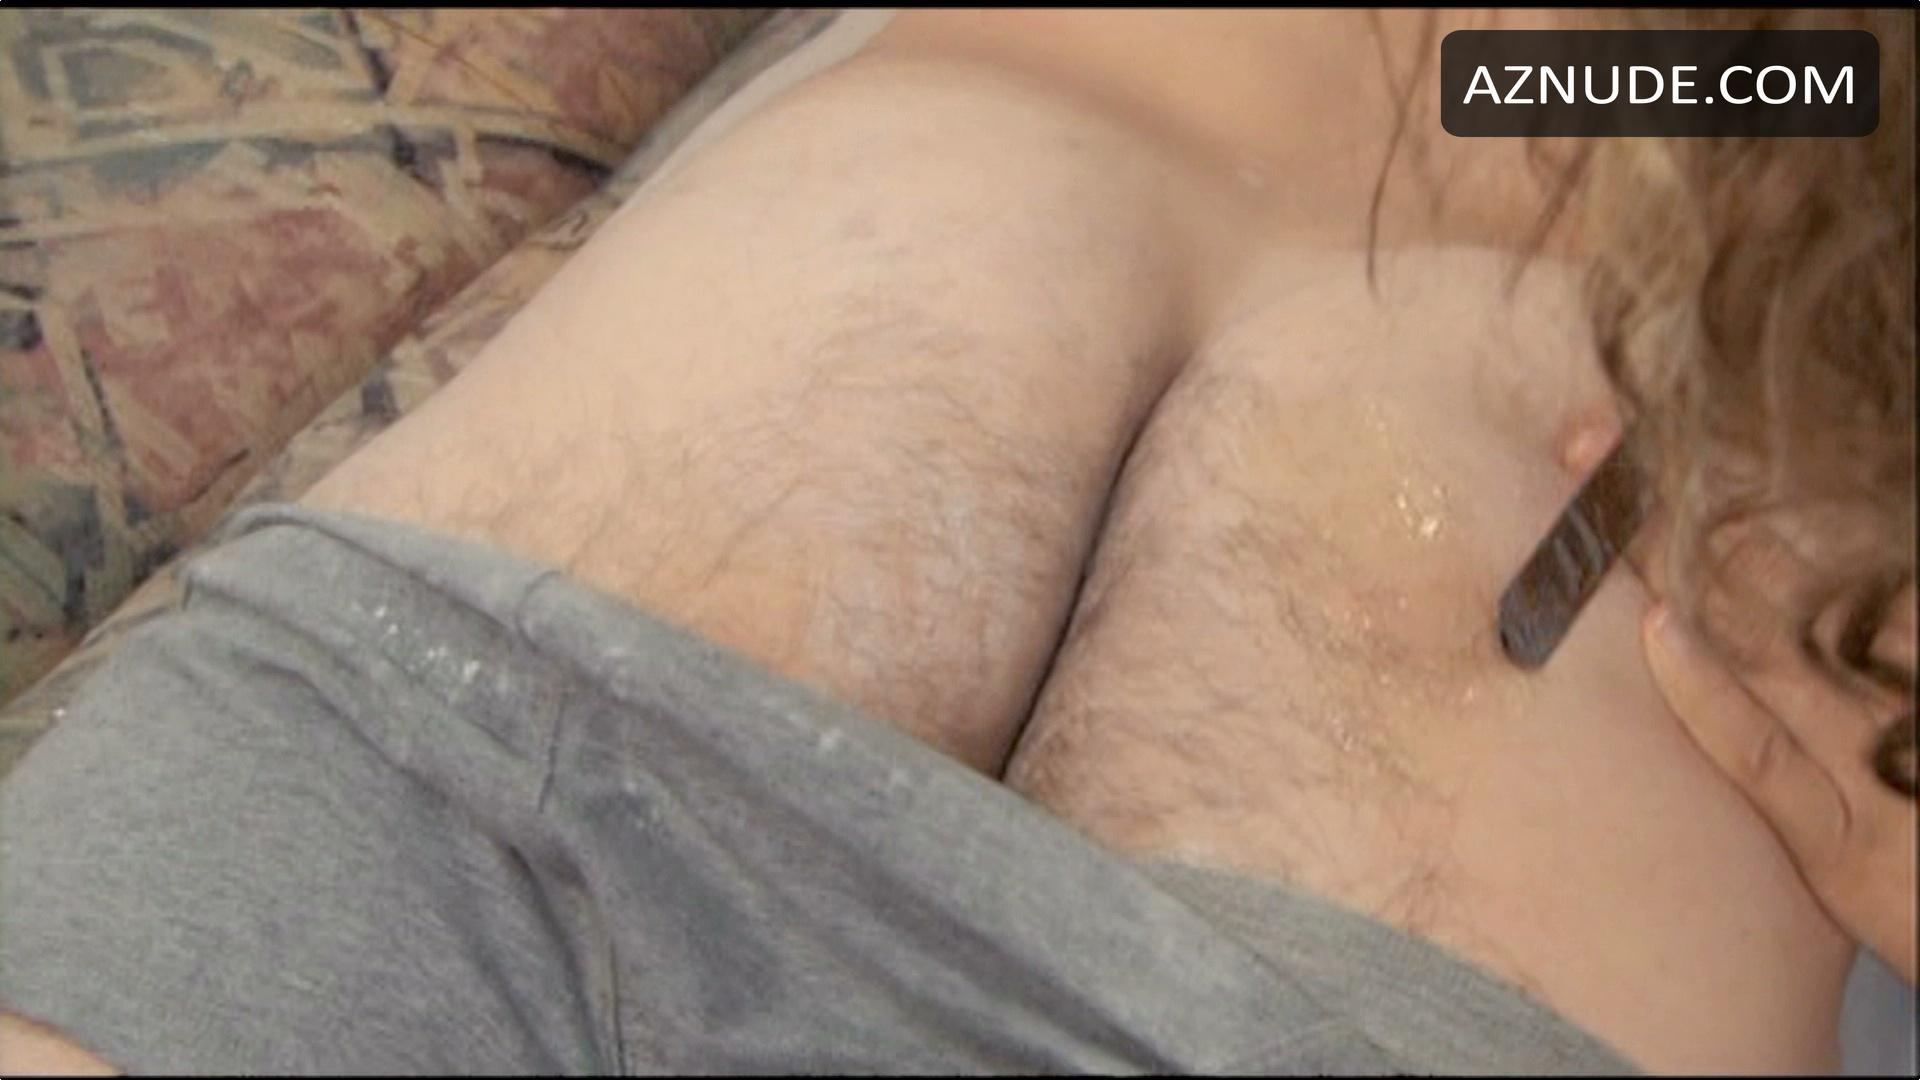 sexy naked dicks and asshole